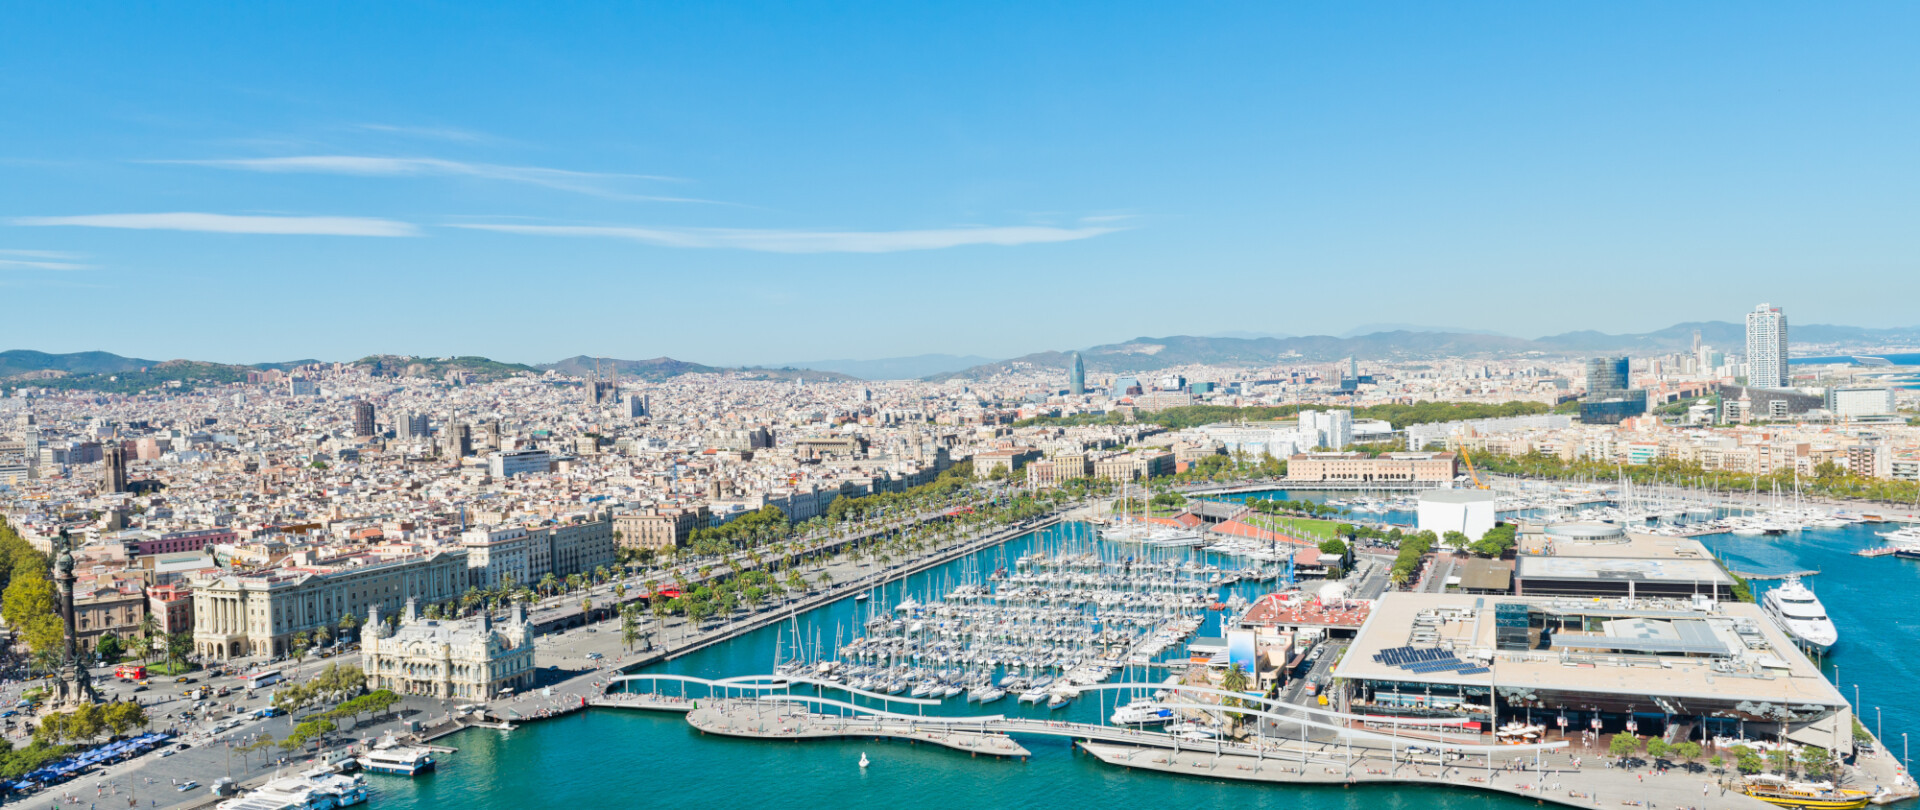 The Superyacht Show Barcelona,  8th - 11th May 2019 photo 1